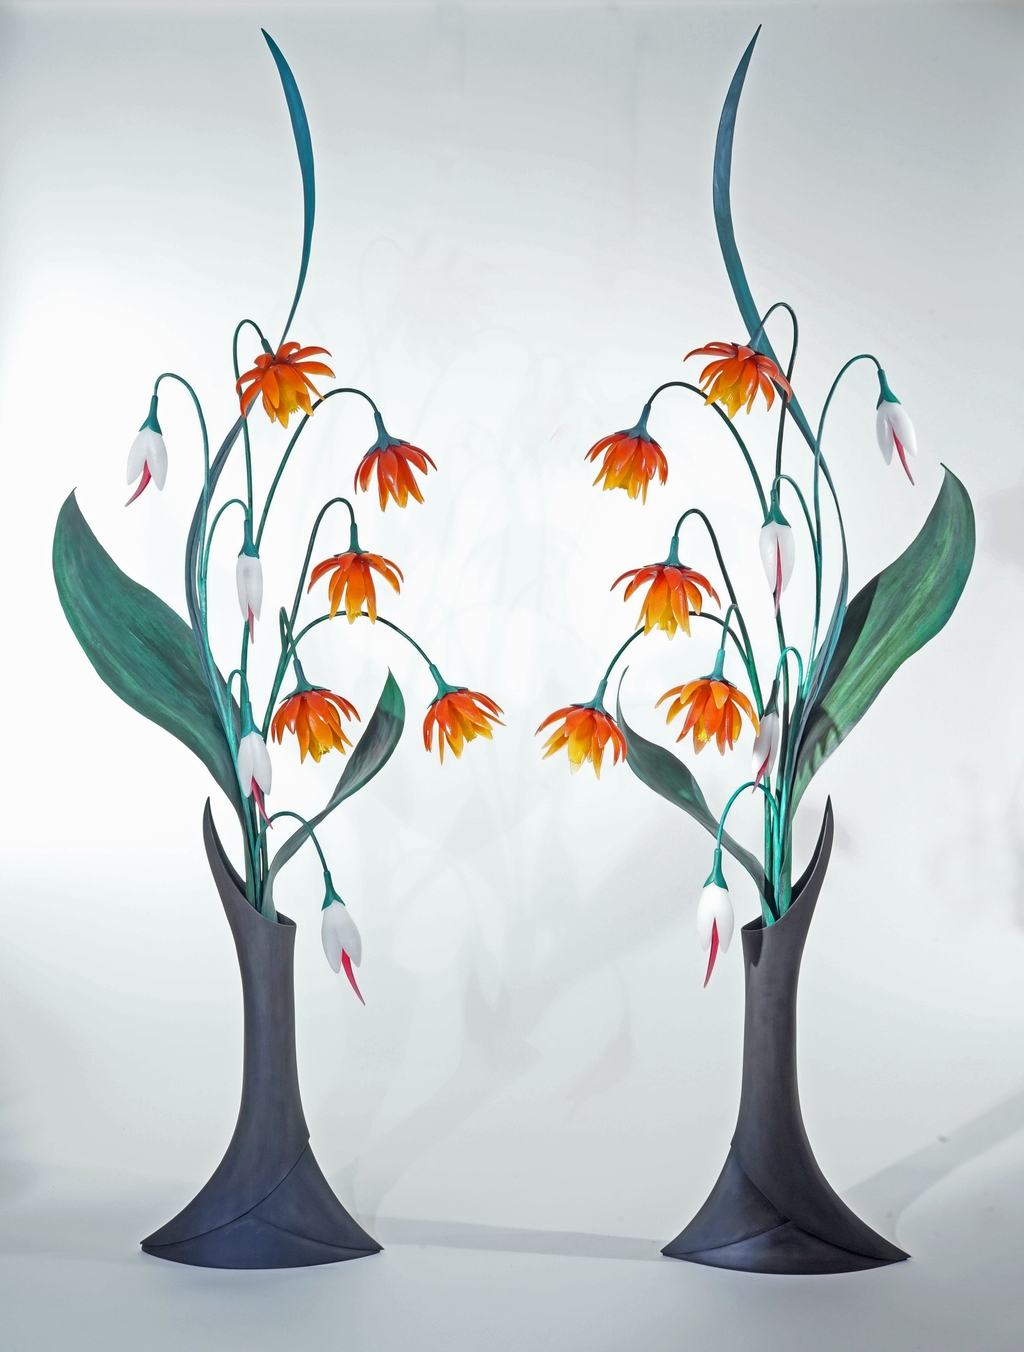 Sculpture of two seven and a half feet tall glass and steel flower arrangements.